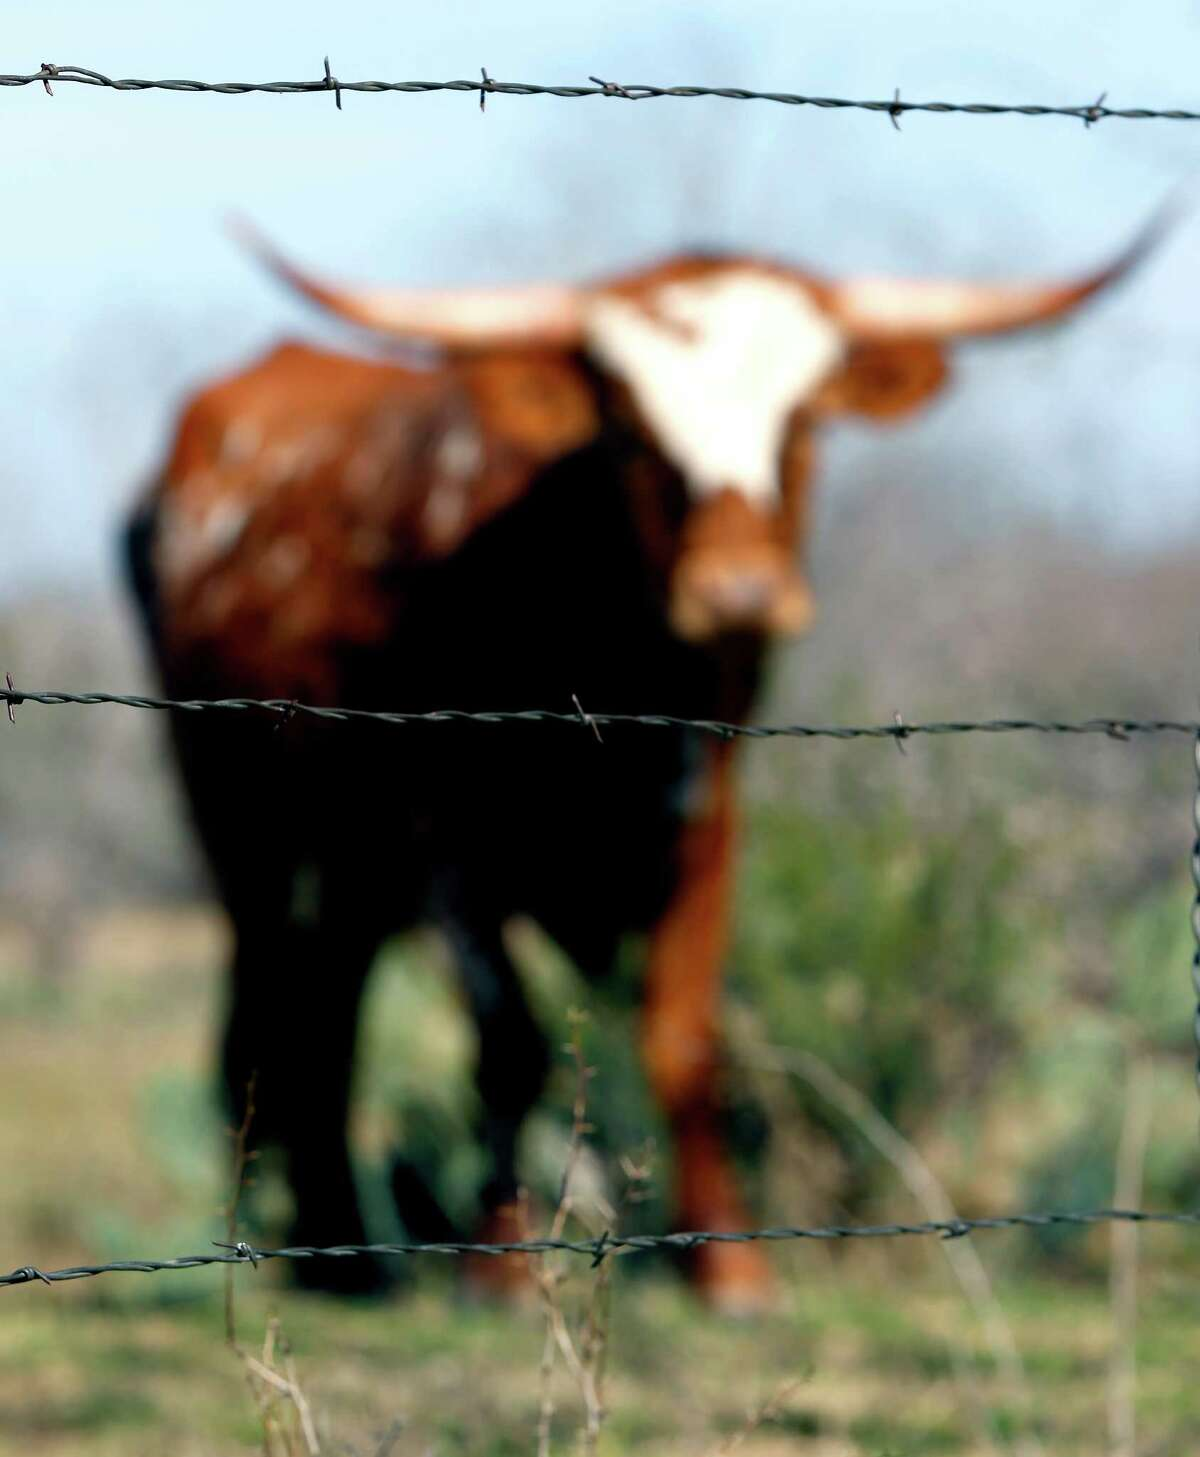 A barbed wire fence separates cattle from the road in south Bexar County.